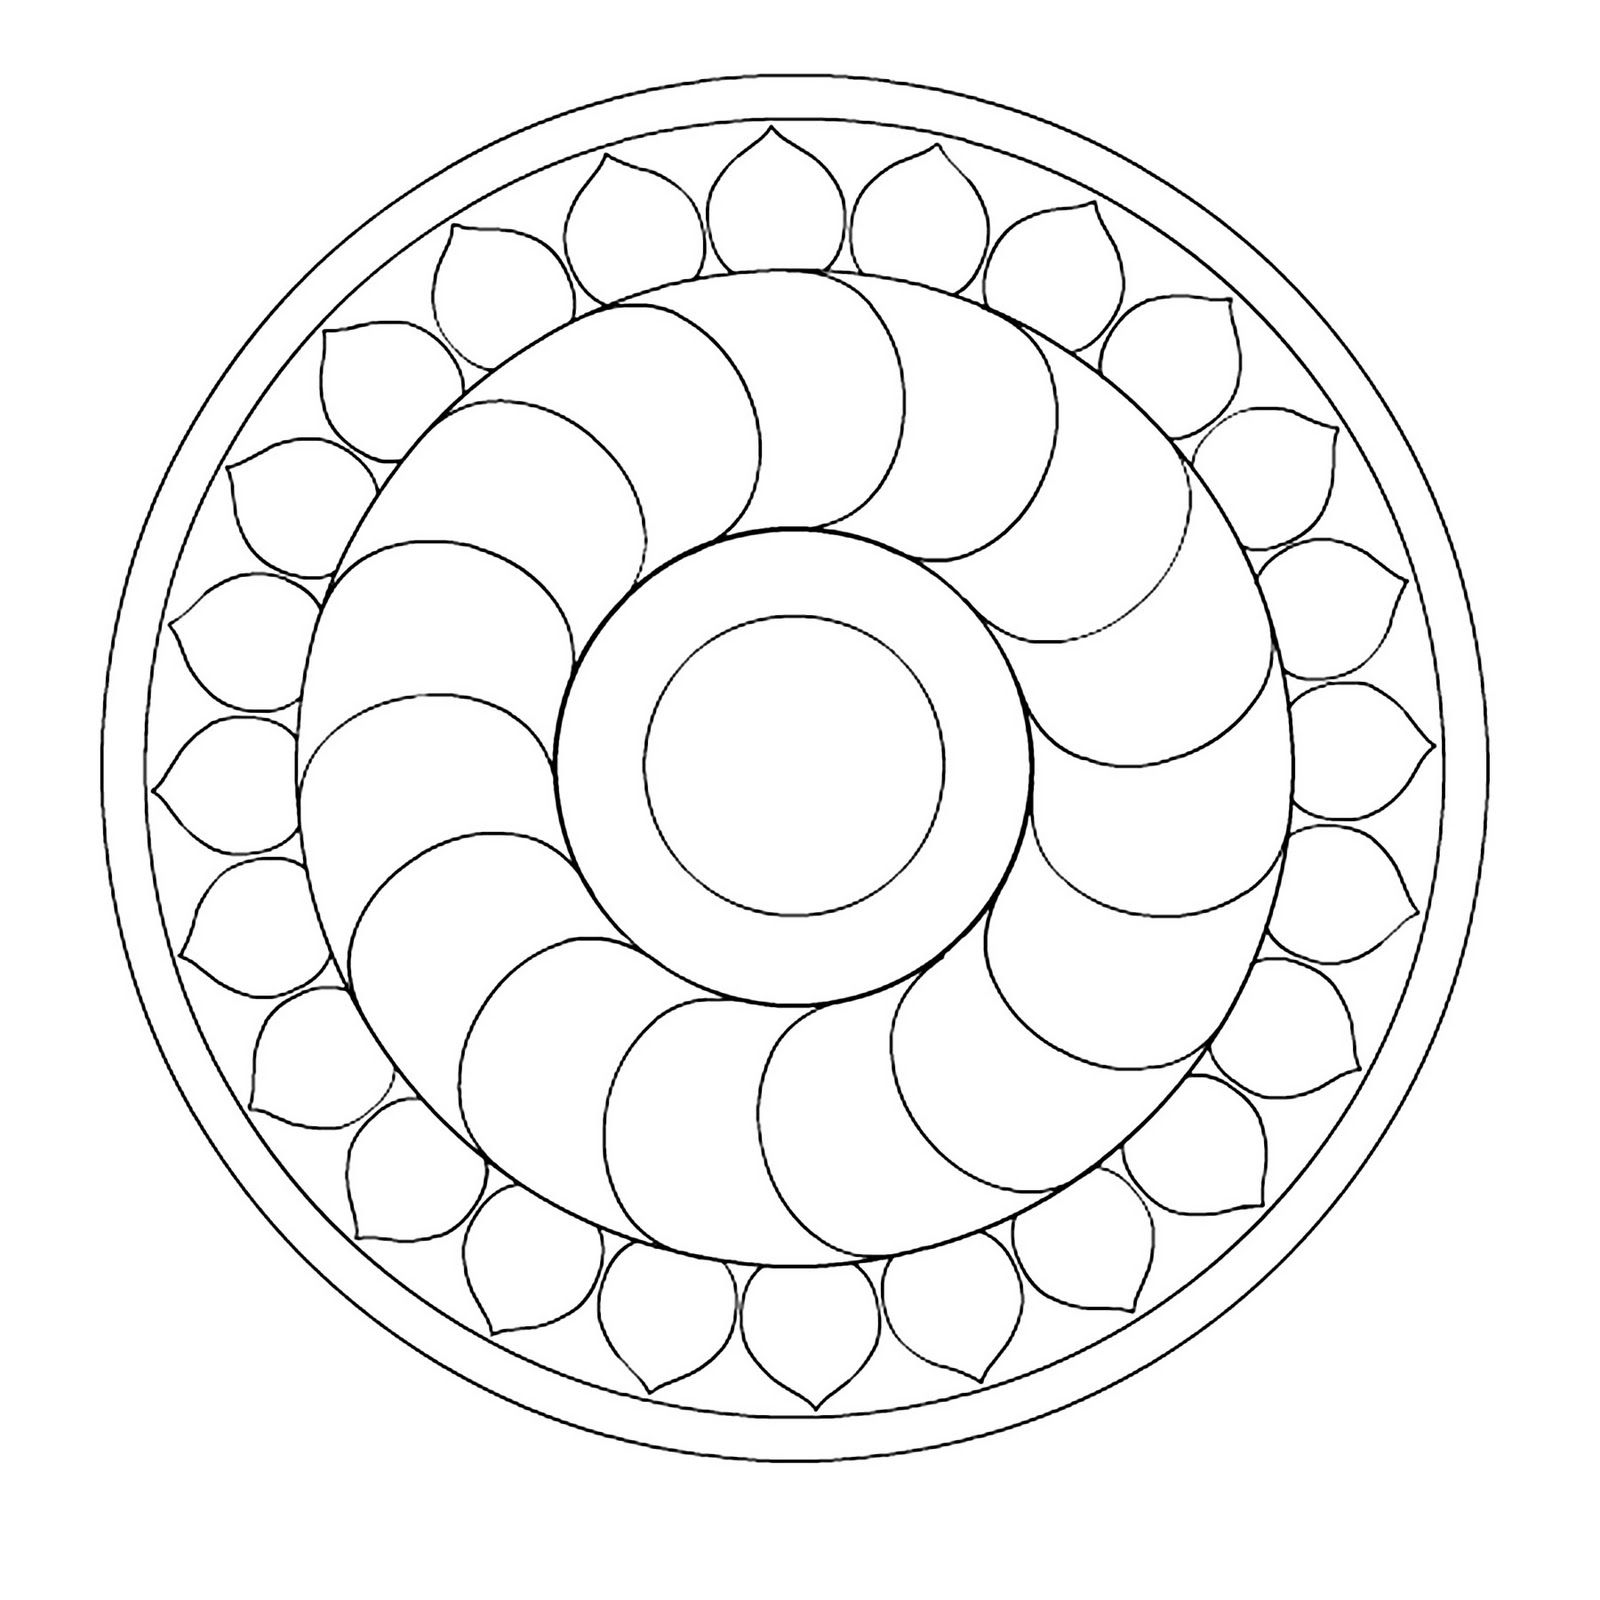 Mandalas Circles Of Hope Healing Mandala Of The Lunar Quarter Full Moon November 21 2010 Simple Mandala Easy Mandala Drawing Mandala Coloring